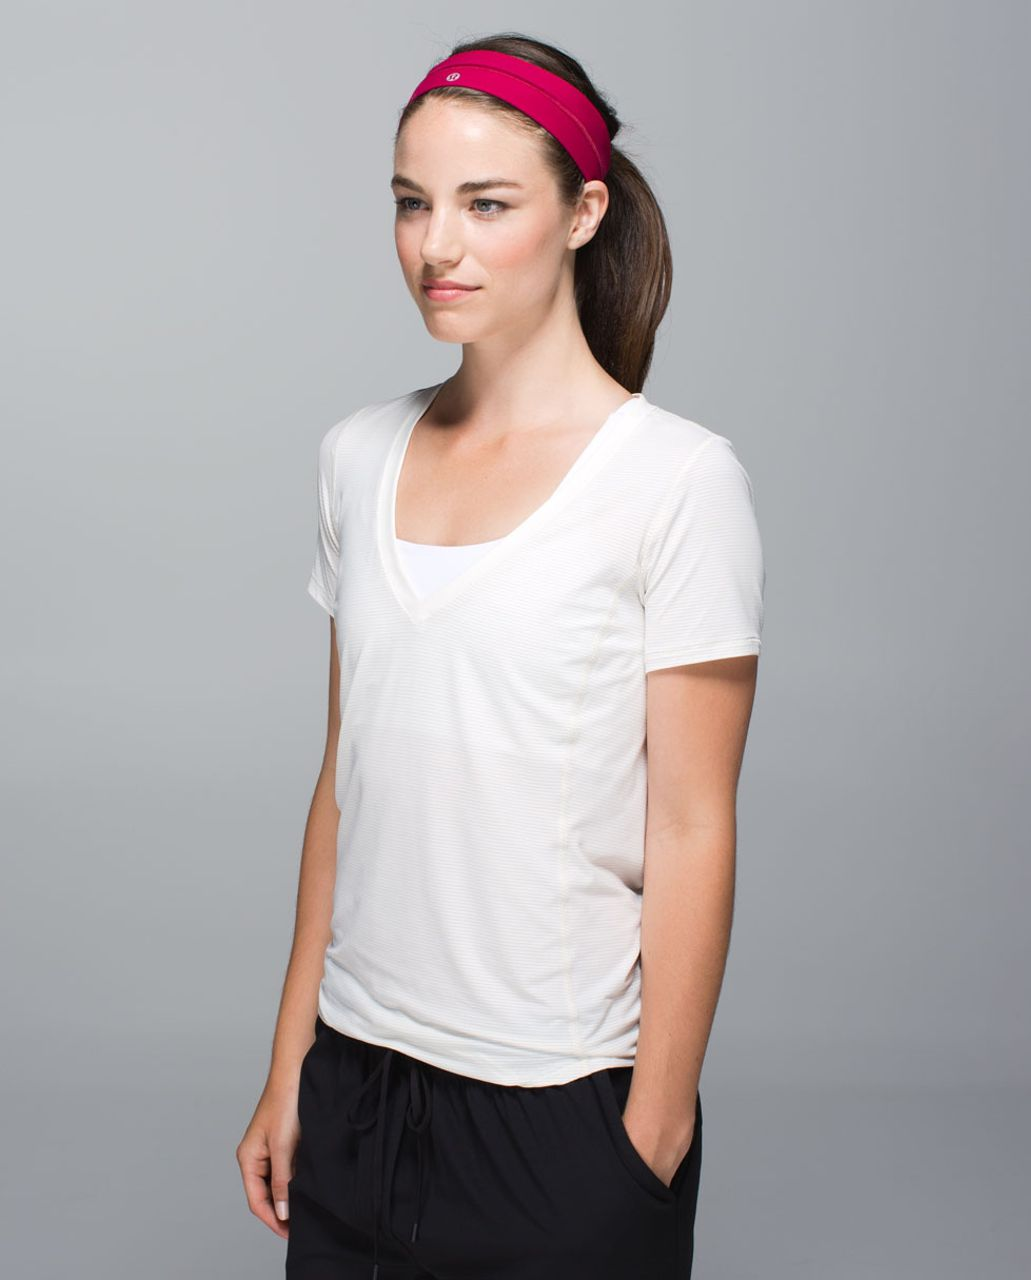 Lululemon Fly Away Tamer Headband - Bumble Berry